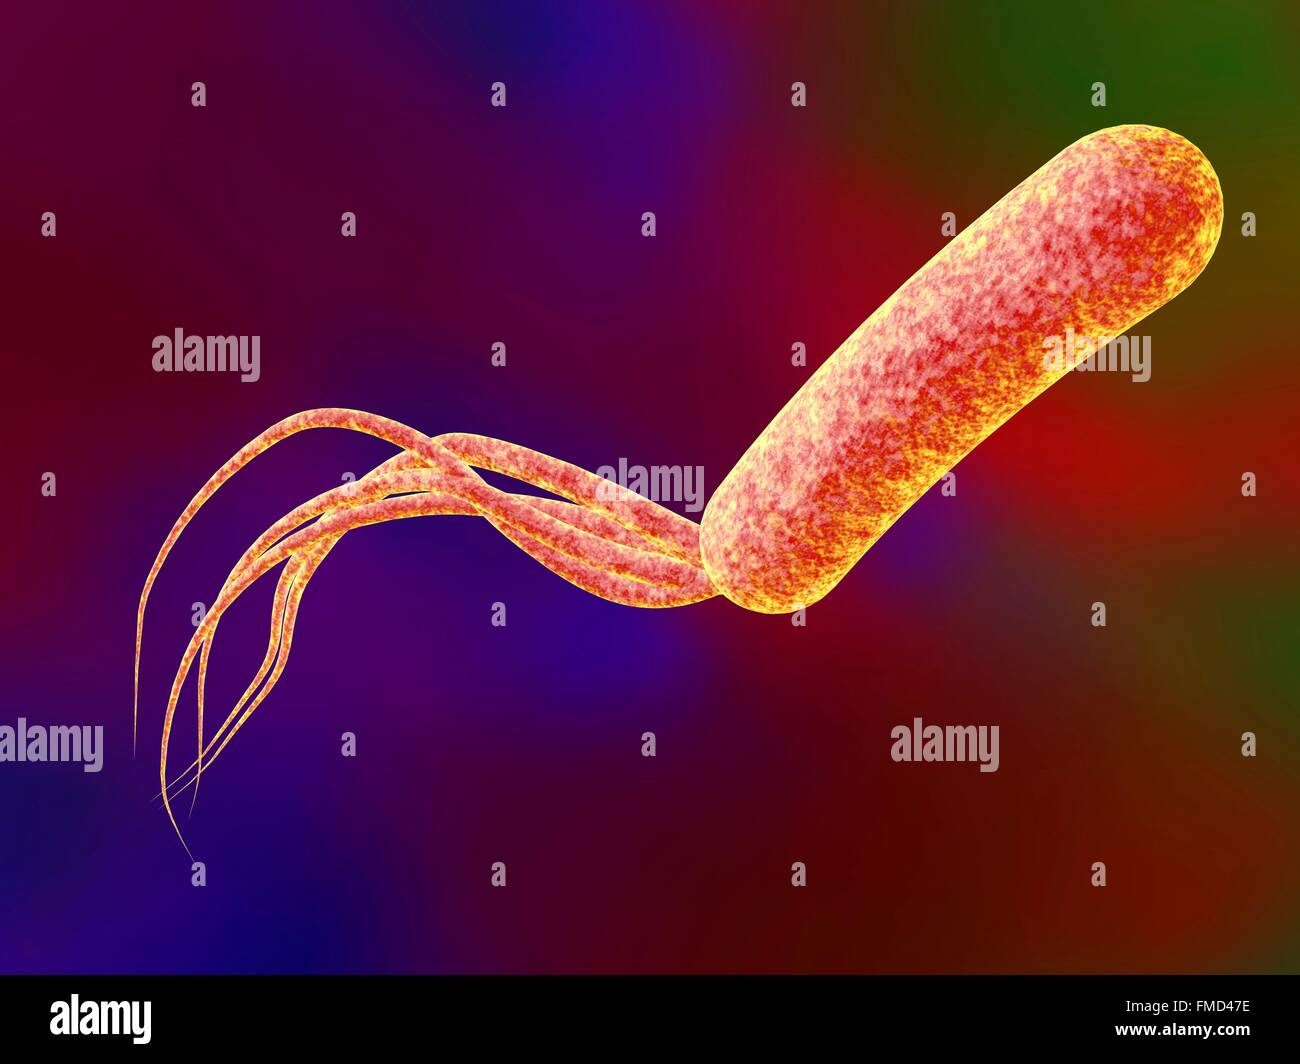 pseudomonas aeruginosa and nosocomial infections Pseudomonas aeruginosa, candida albicans, and device-related nosocomial infections: implications, trends, and potential approaches for control.